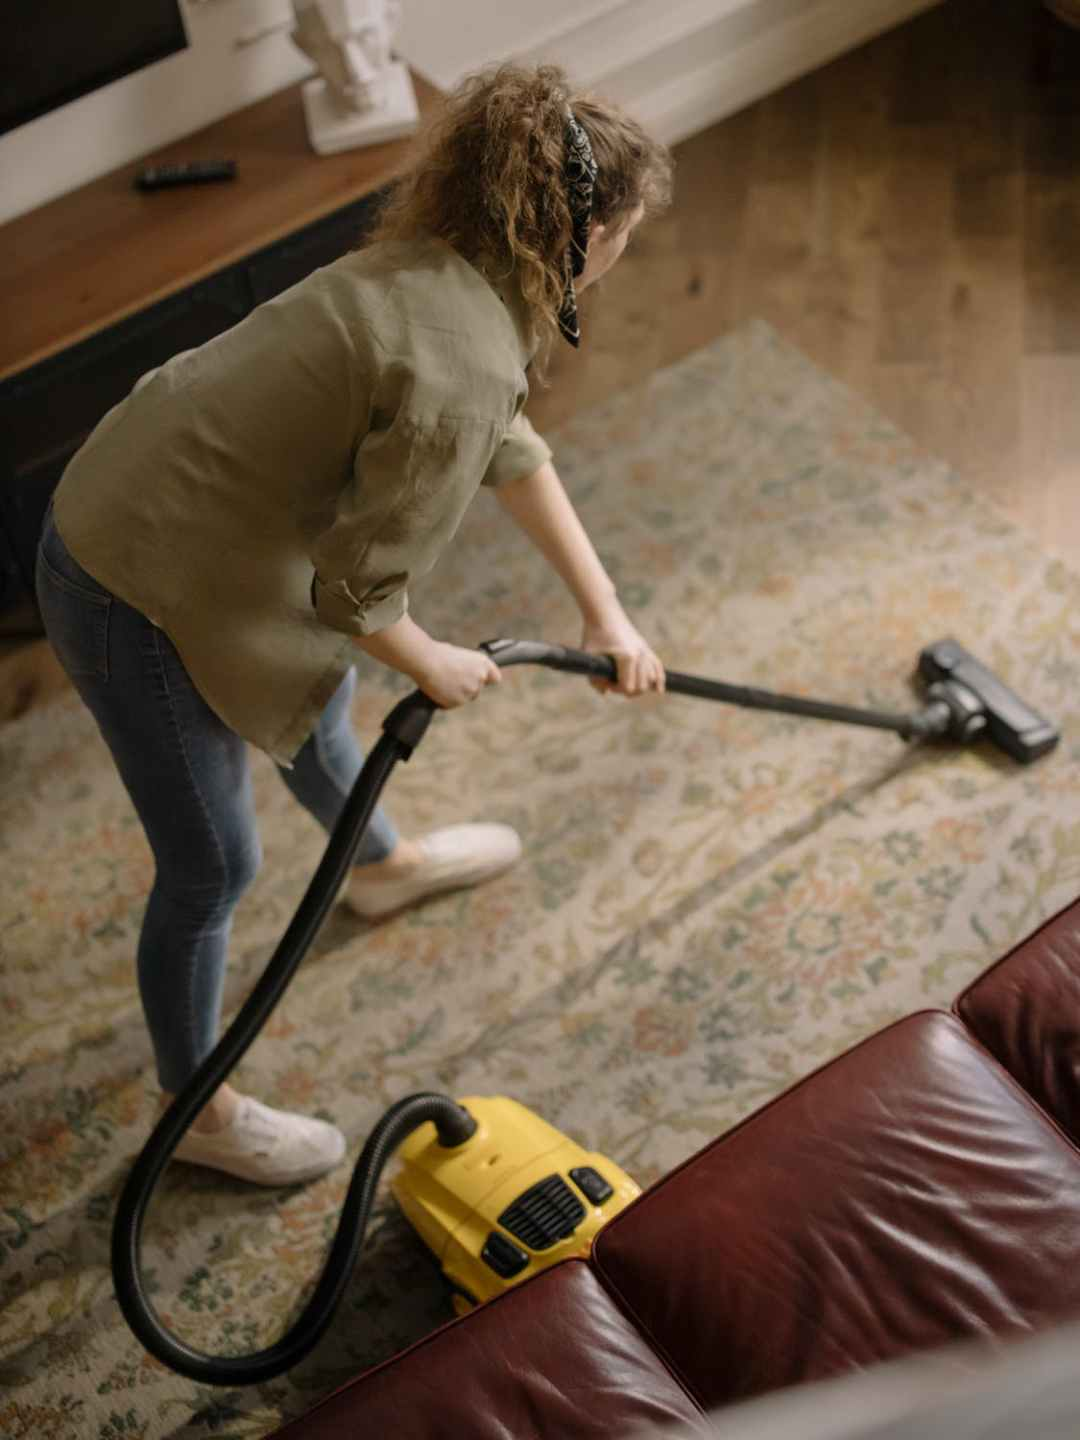 woman spring cleaning and vacuuming her carpet